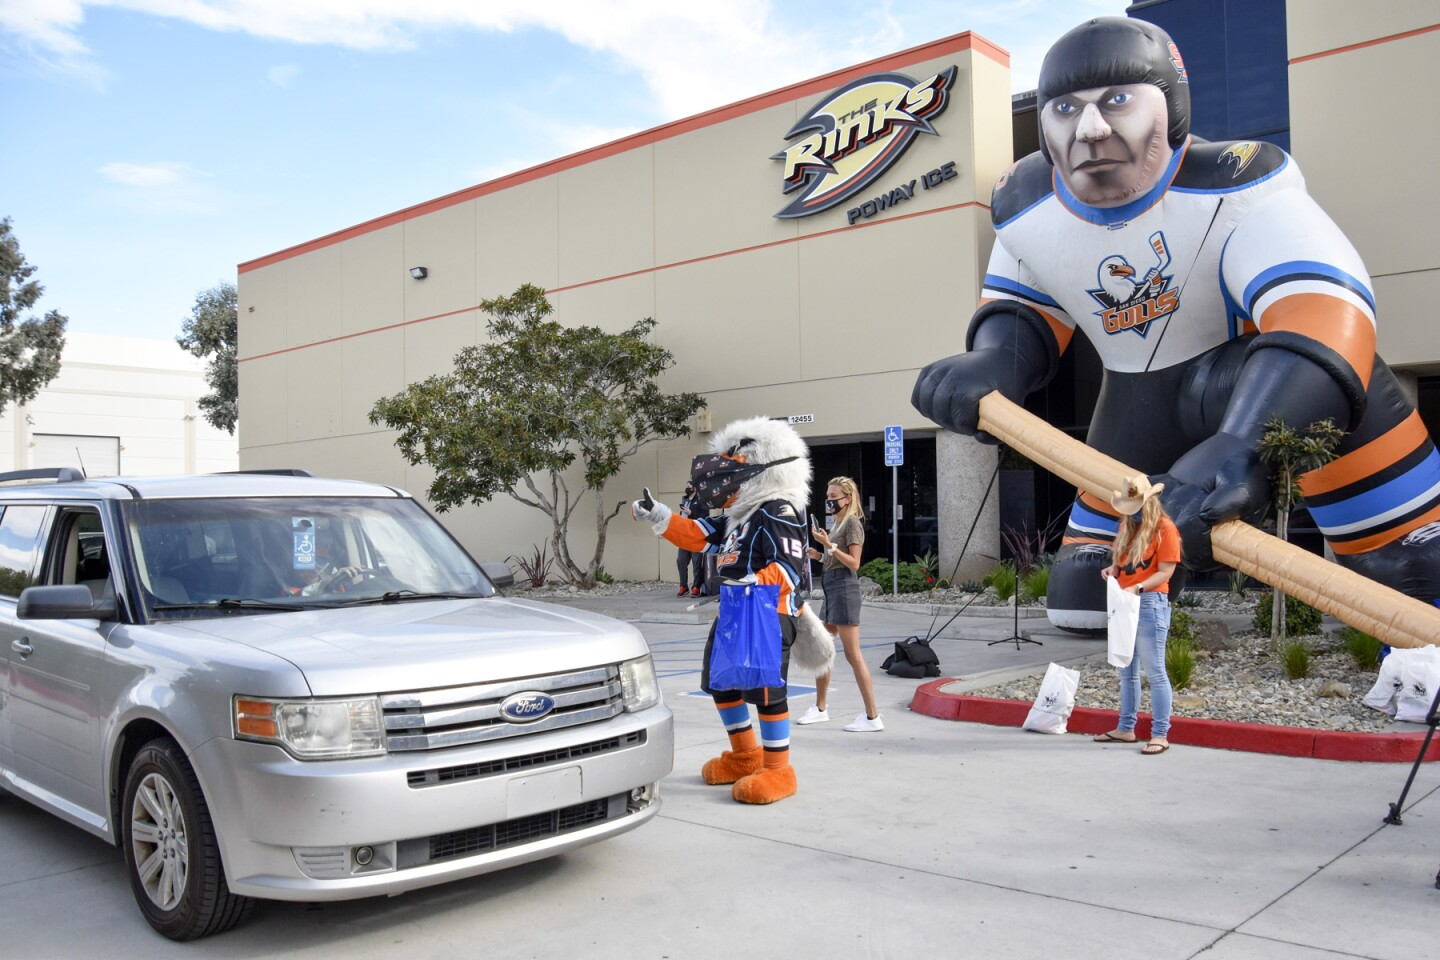 Gulliver the mascot greets a carload of fans outside The Rinks.